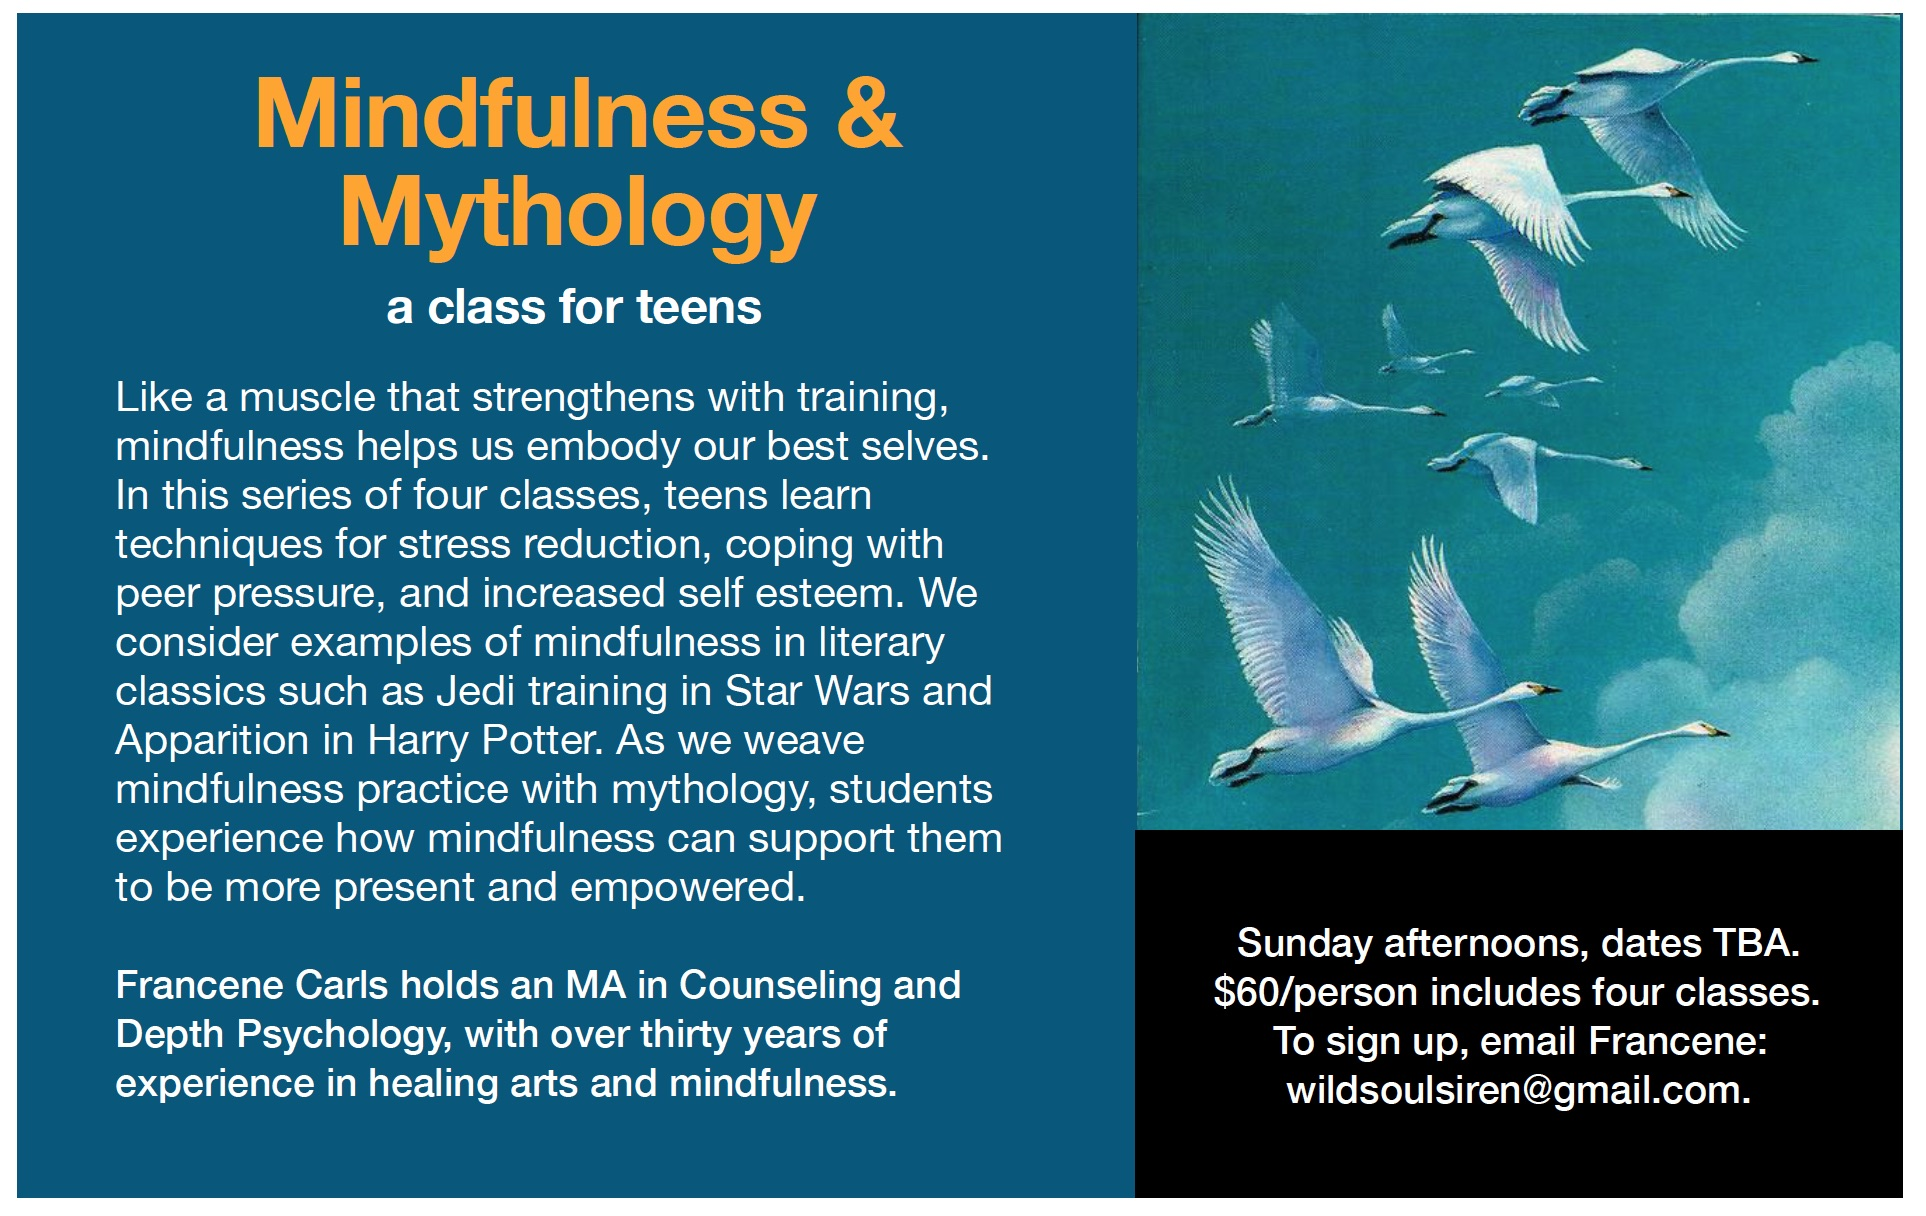 Mindfulness & Mythology